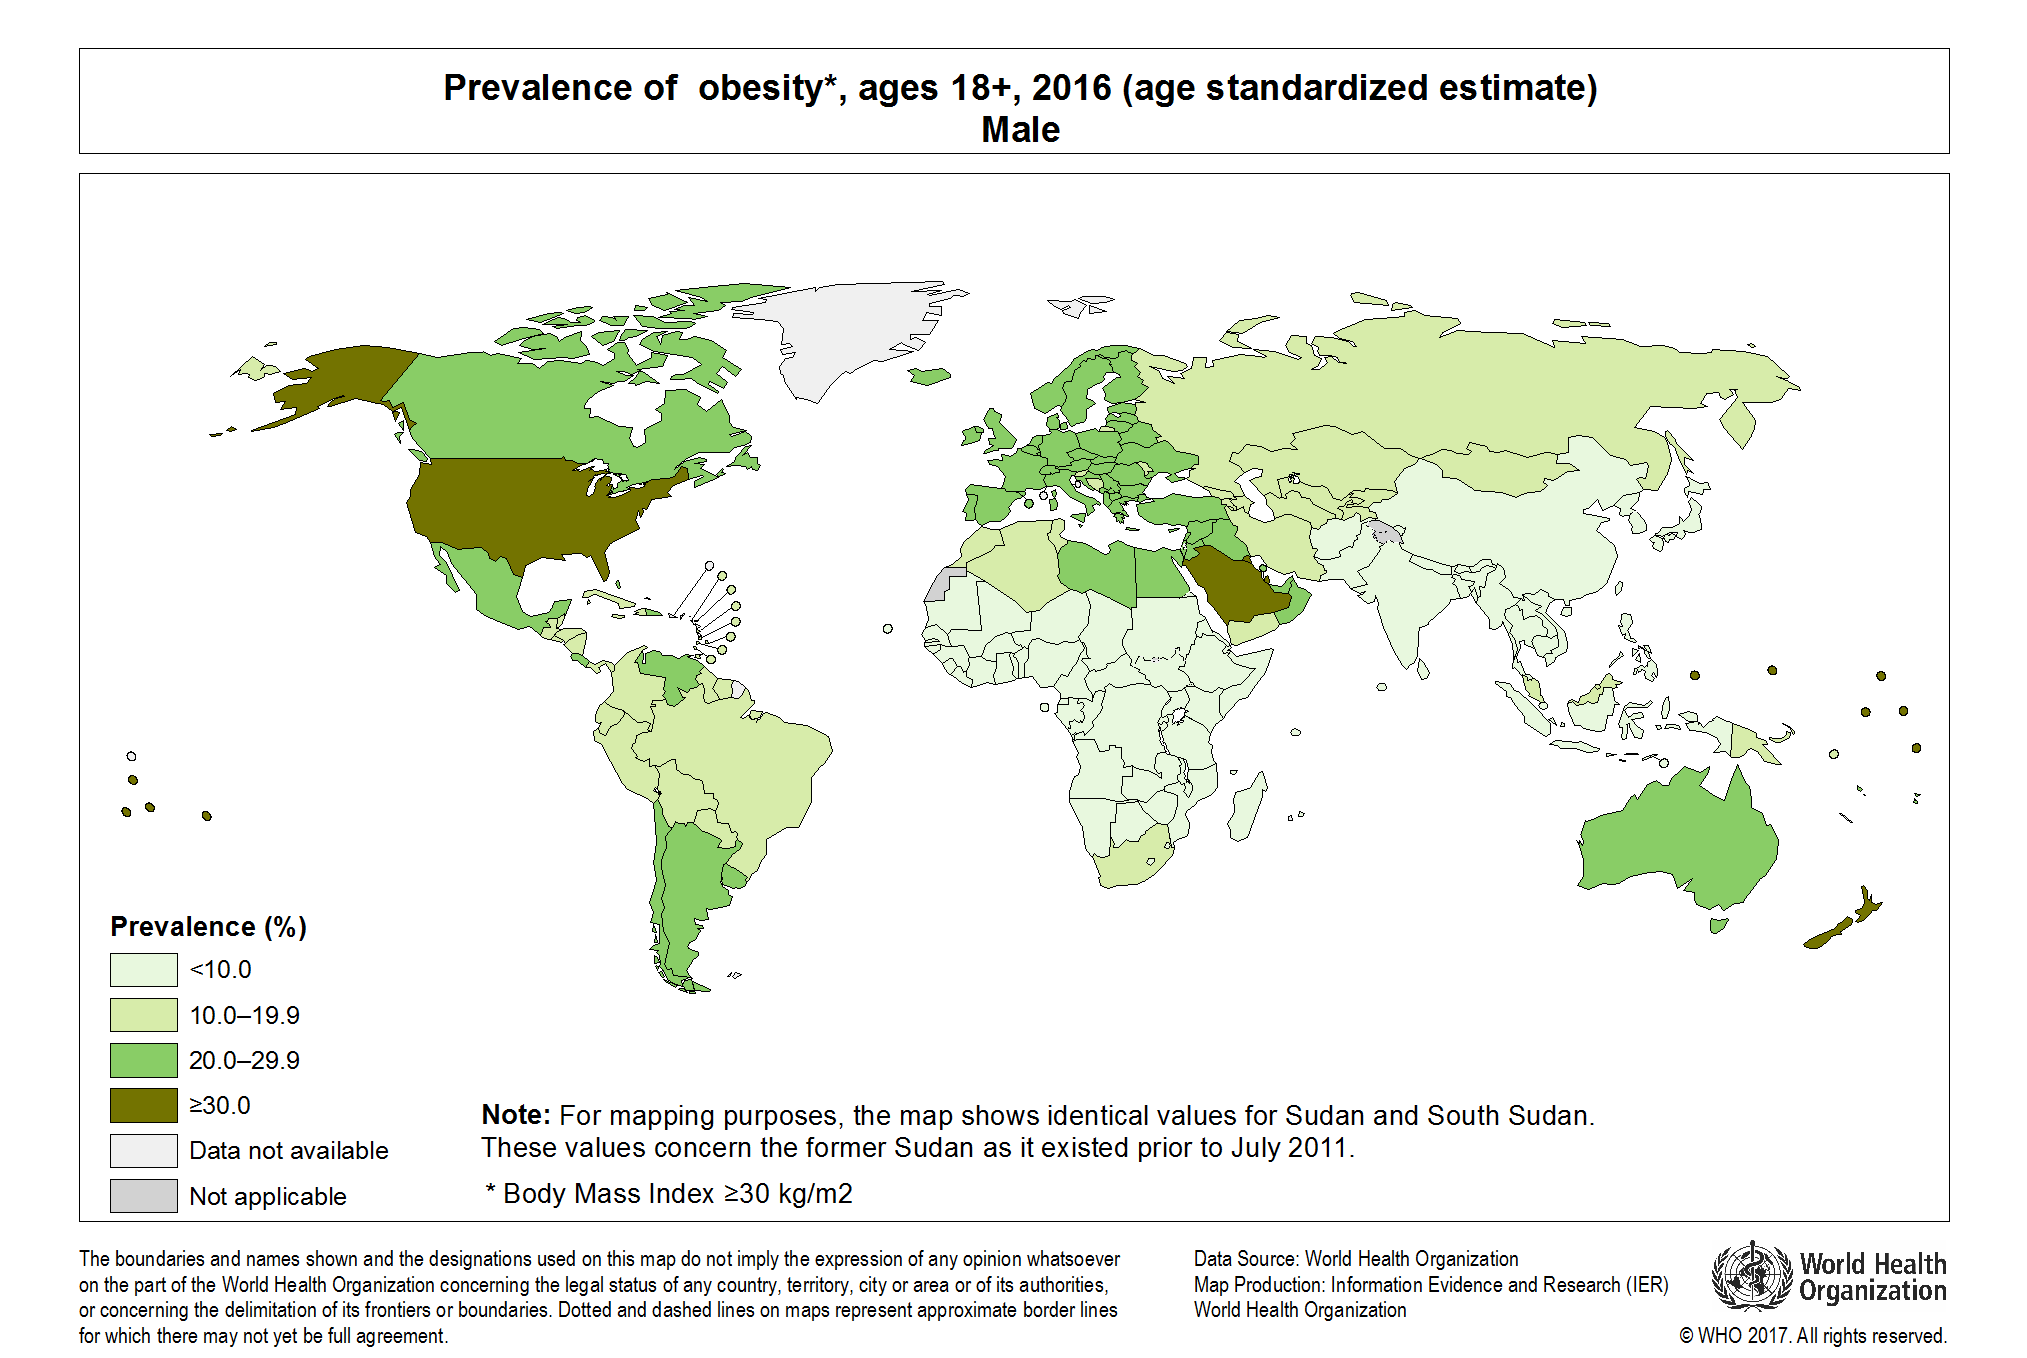 WHO Global Health Observatory Map Gallery - male map